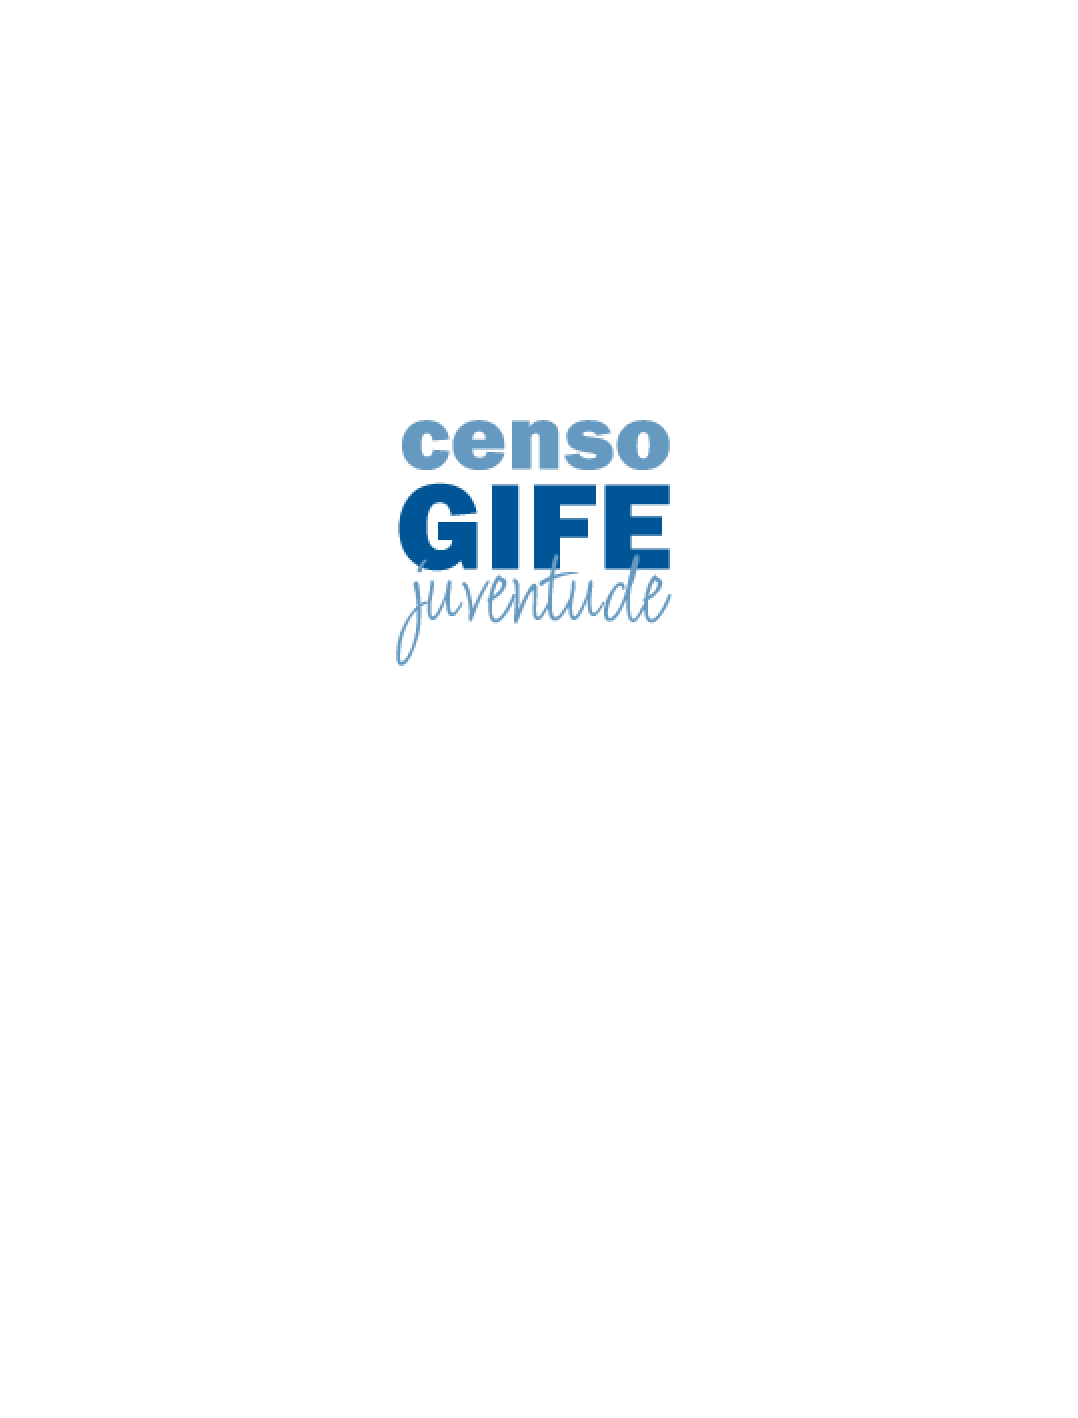 Censo GIFE juventude